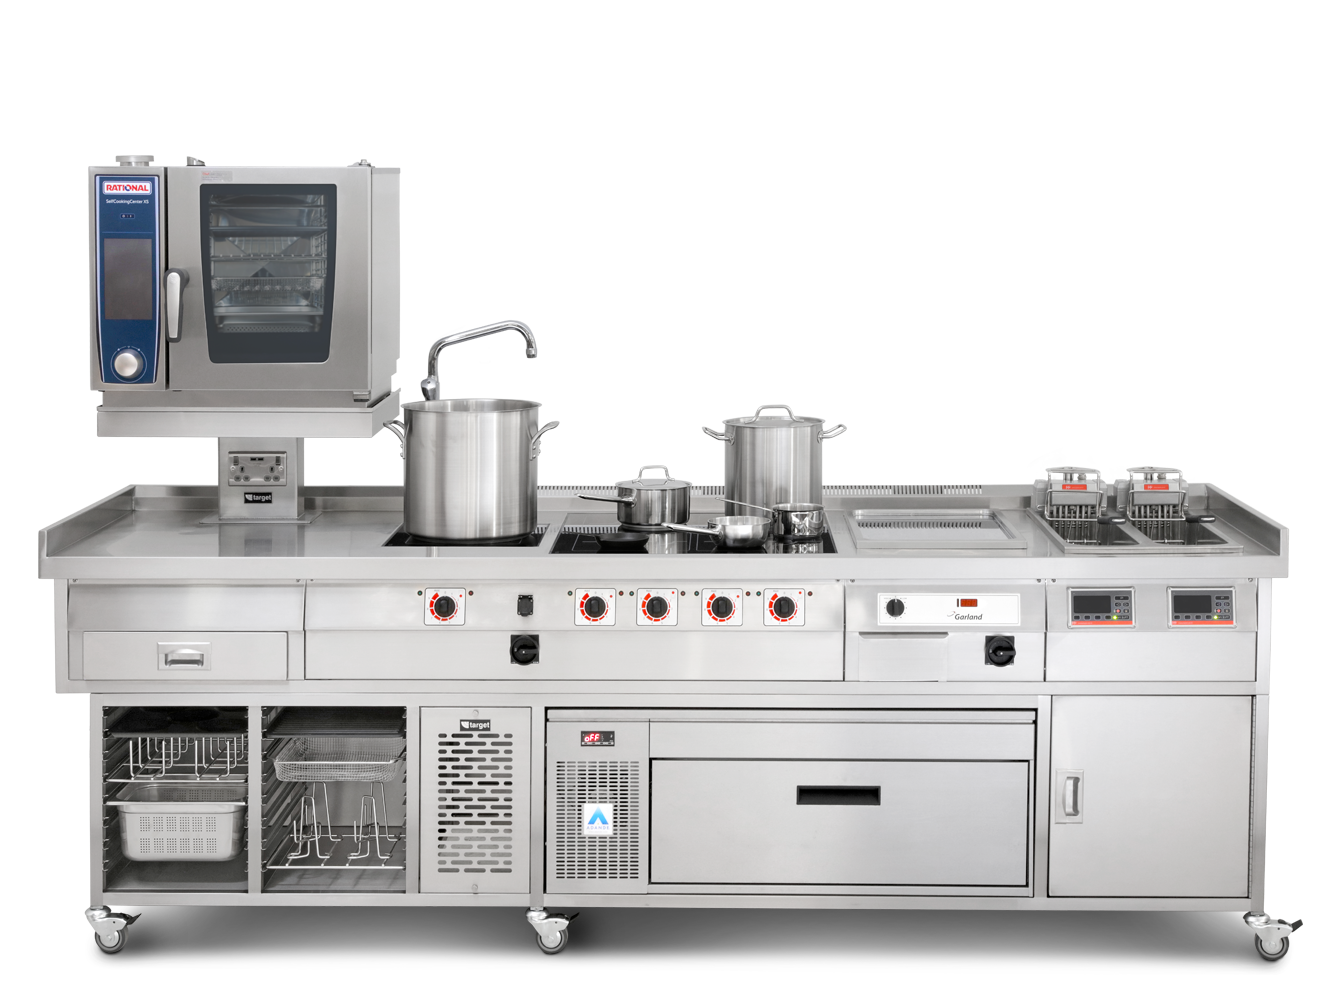 commercial-induction-range-with-induction-plancha-fryer-refrigeration-combi-oven.png